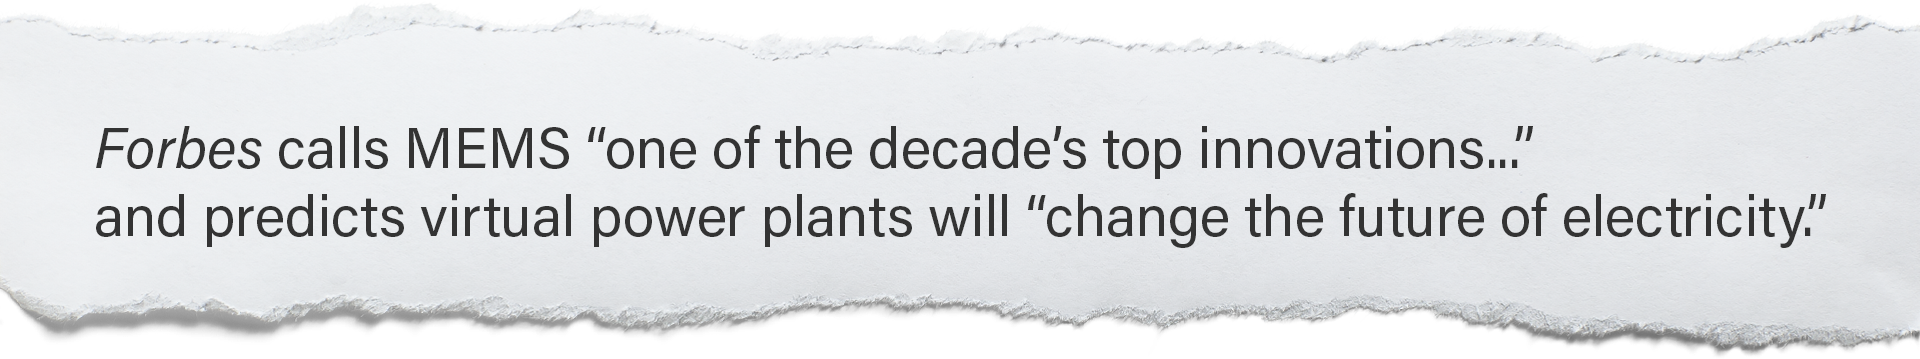 """Forbes calls MEMS """"one of the decade's top innovations..."""" and predicts virtual power plants will """"change the future of electricity."""""""